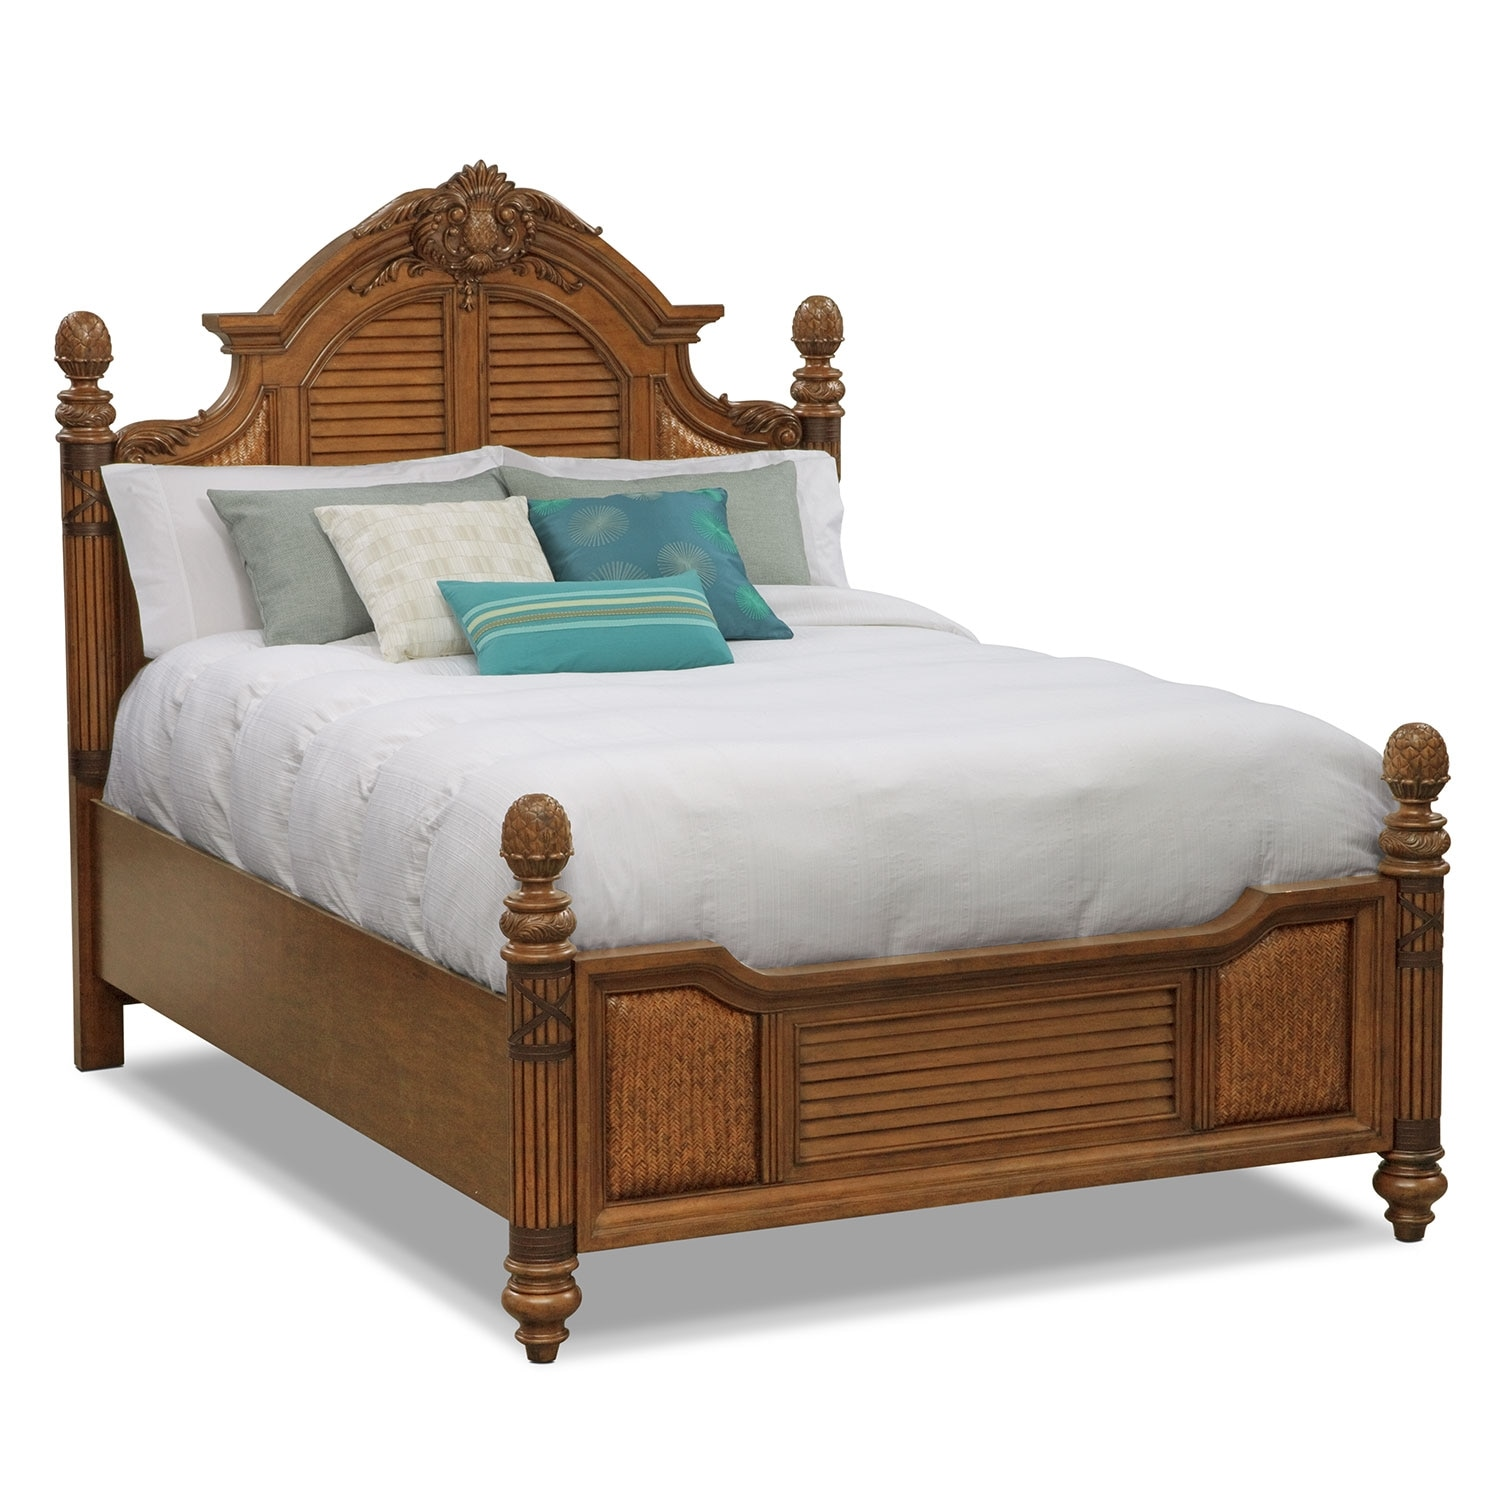 [Key Largo King Bed]